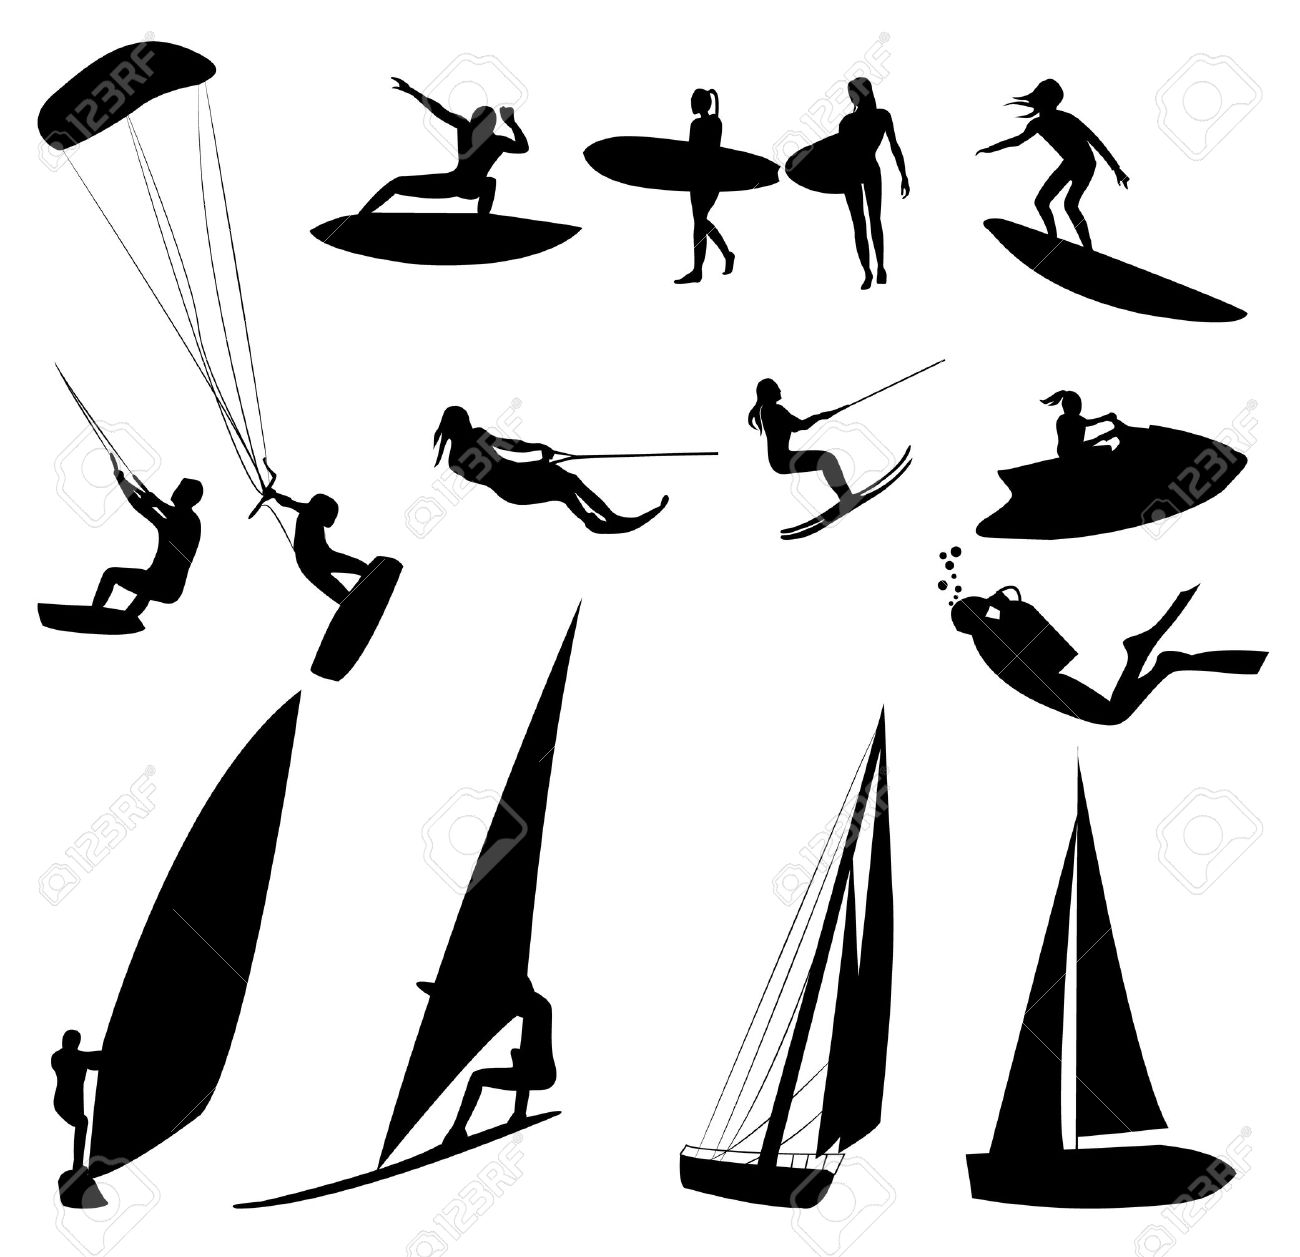 Silhouettes of water sports, isolated on white. Stock Photo - 13214738